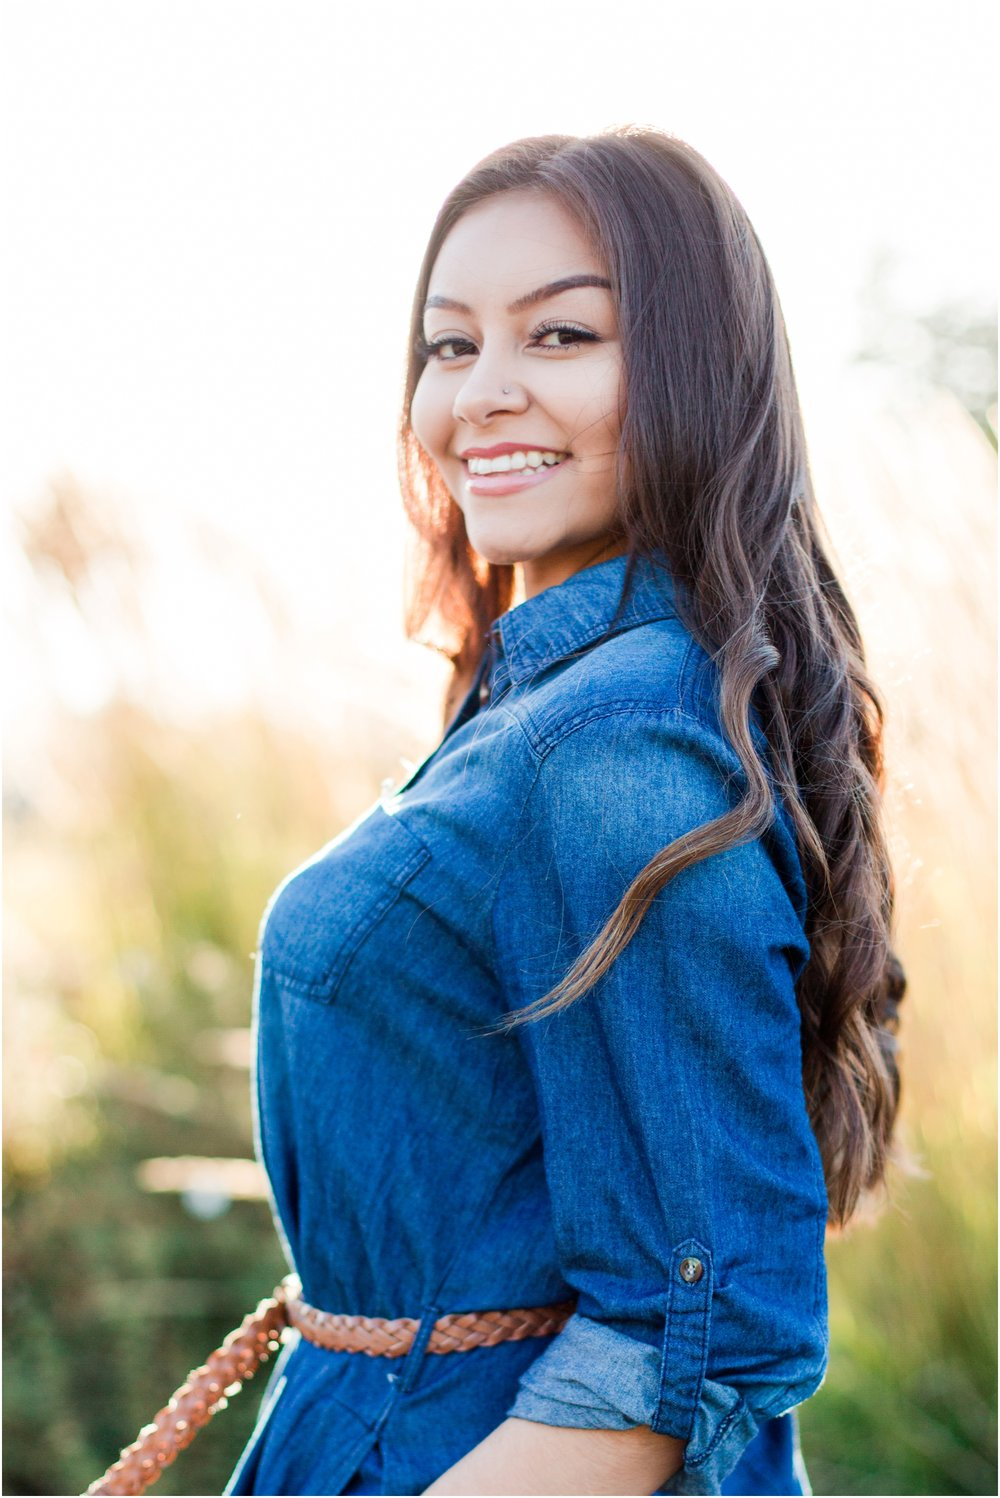 High School Senior portriats by Briana Calderon Photography based in the Greater Seattle & Tacoma, WA_0947.jpg